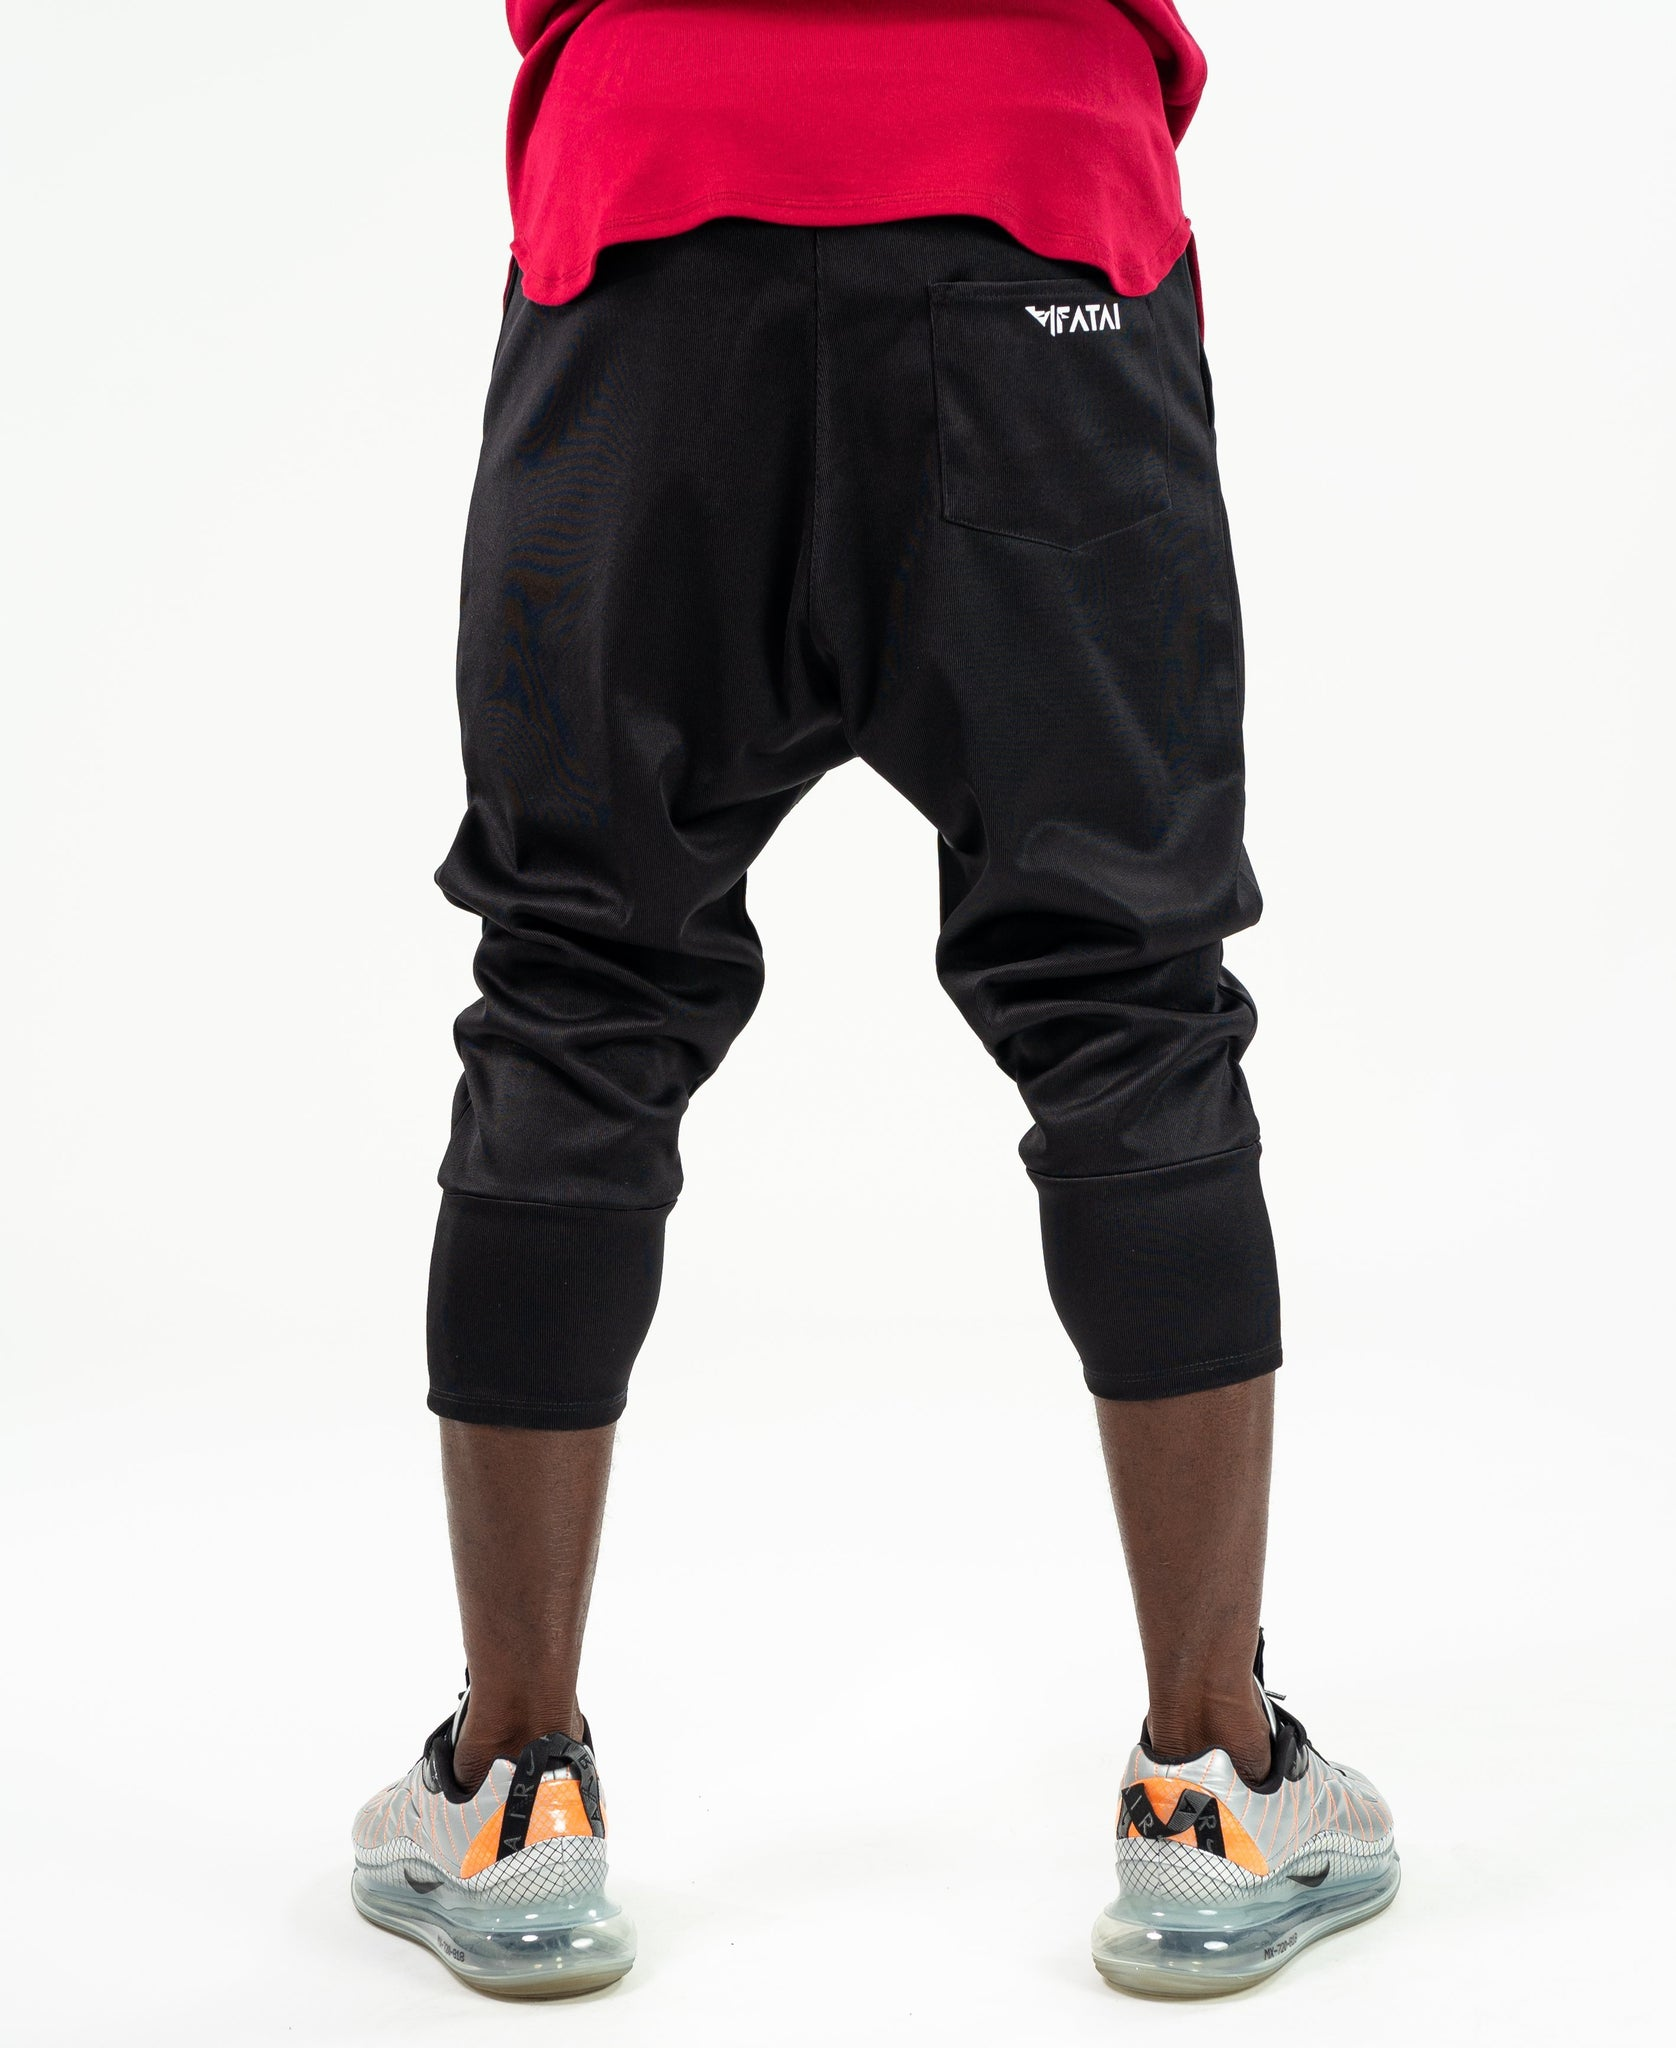 Short Black trousers with black side design - Fatai Style